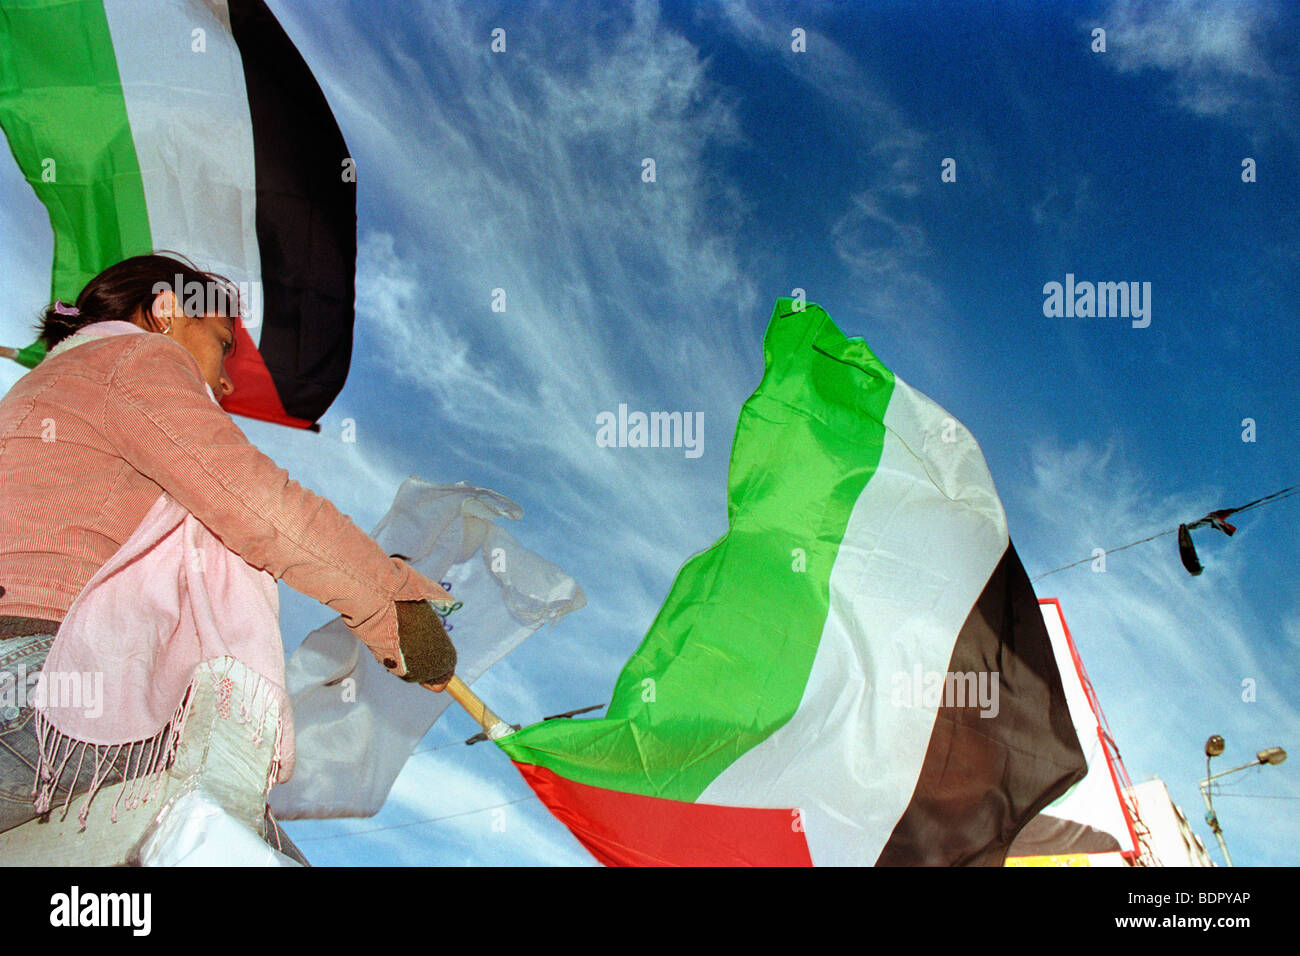 Palestinian flag hold by a girl on a manifestation in Ramallah, during a celebration - Stock Image